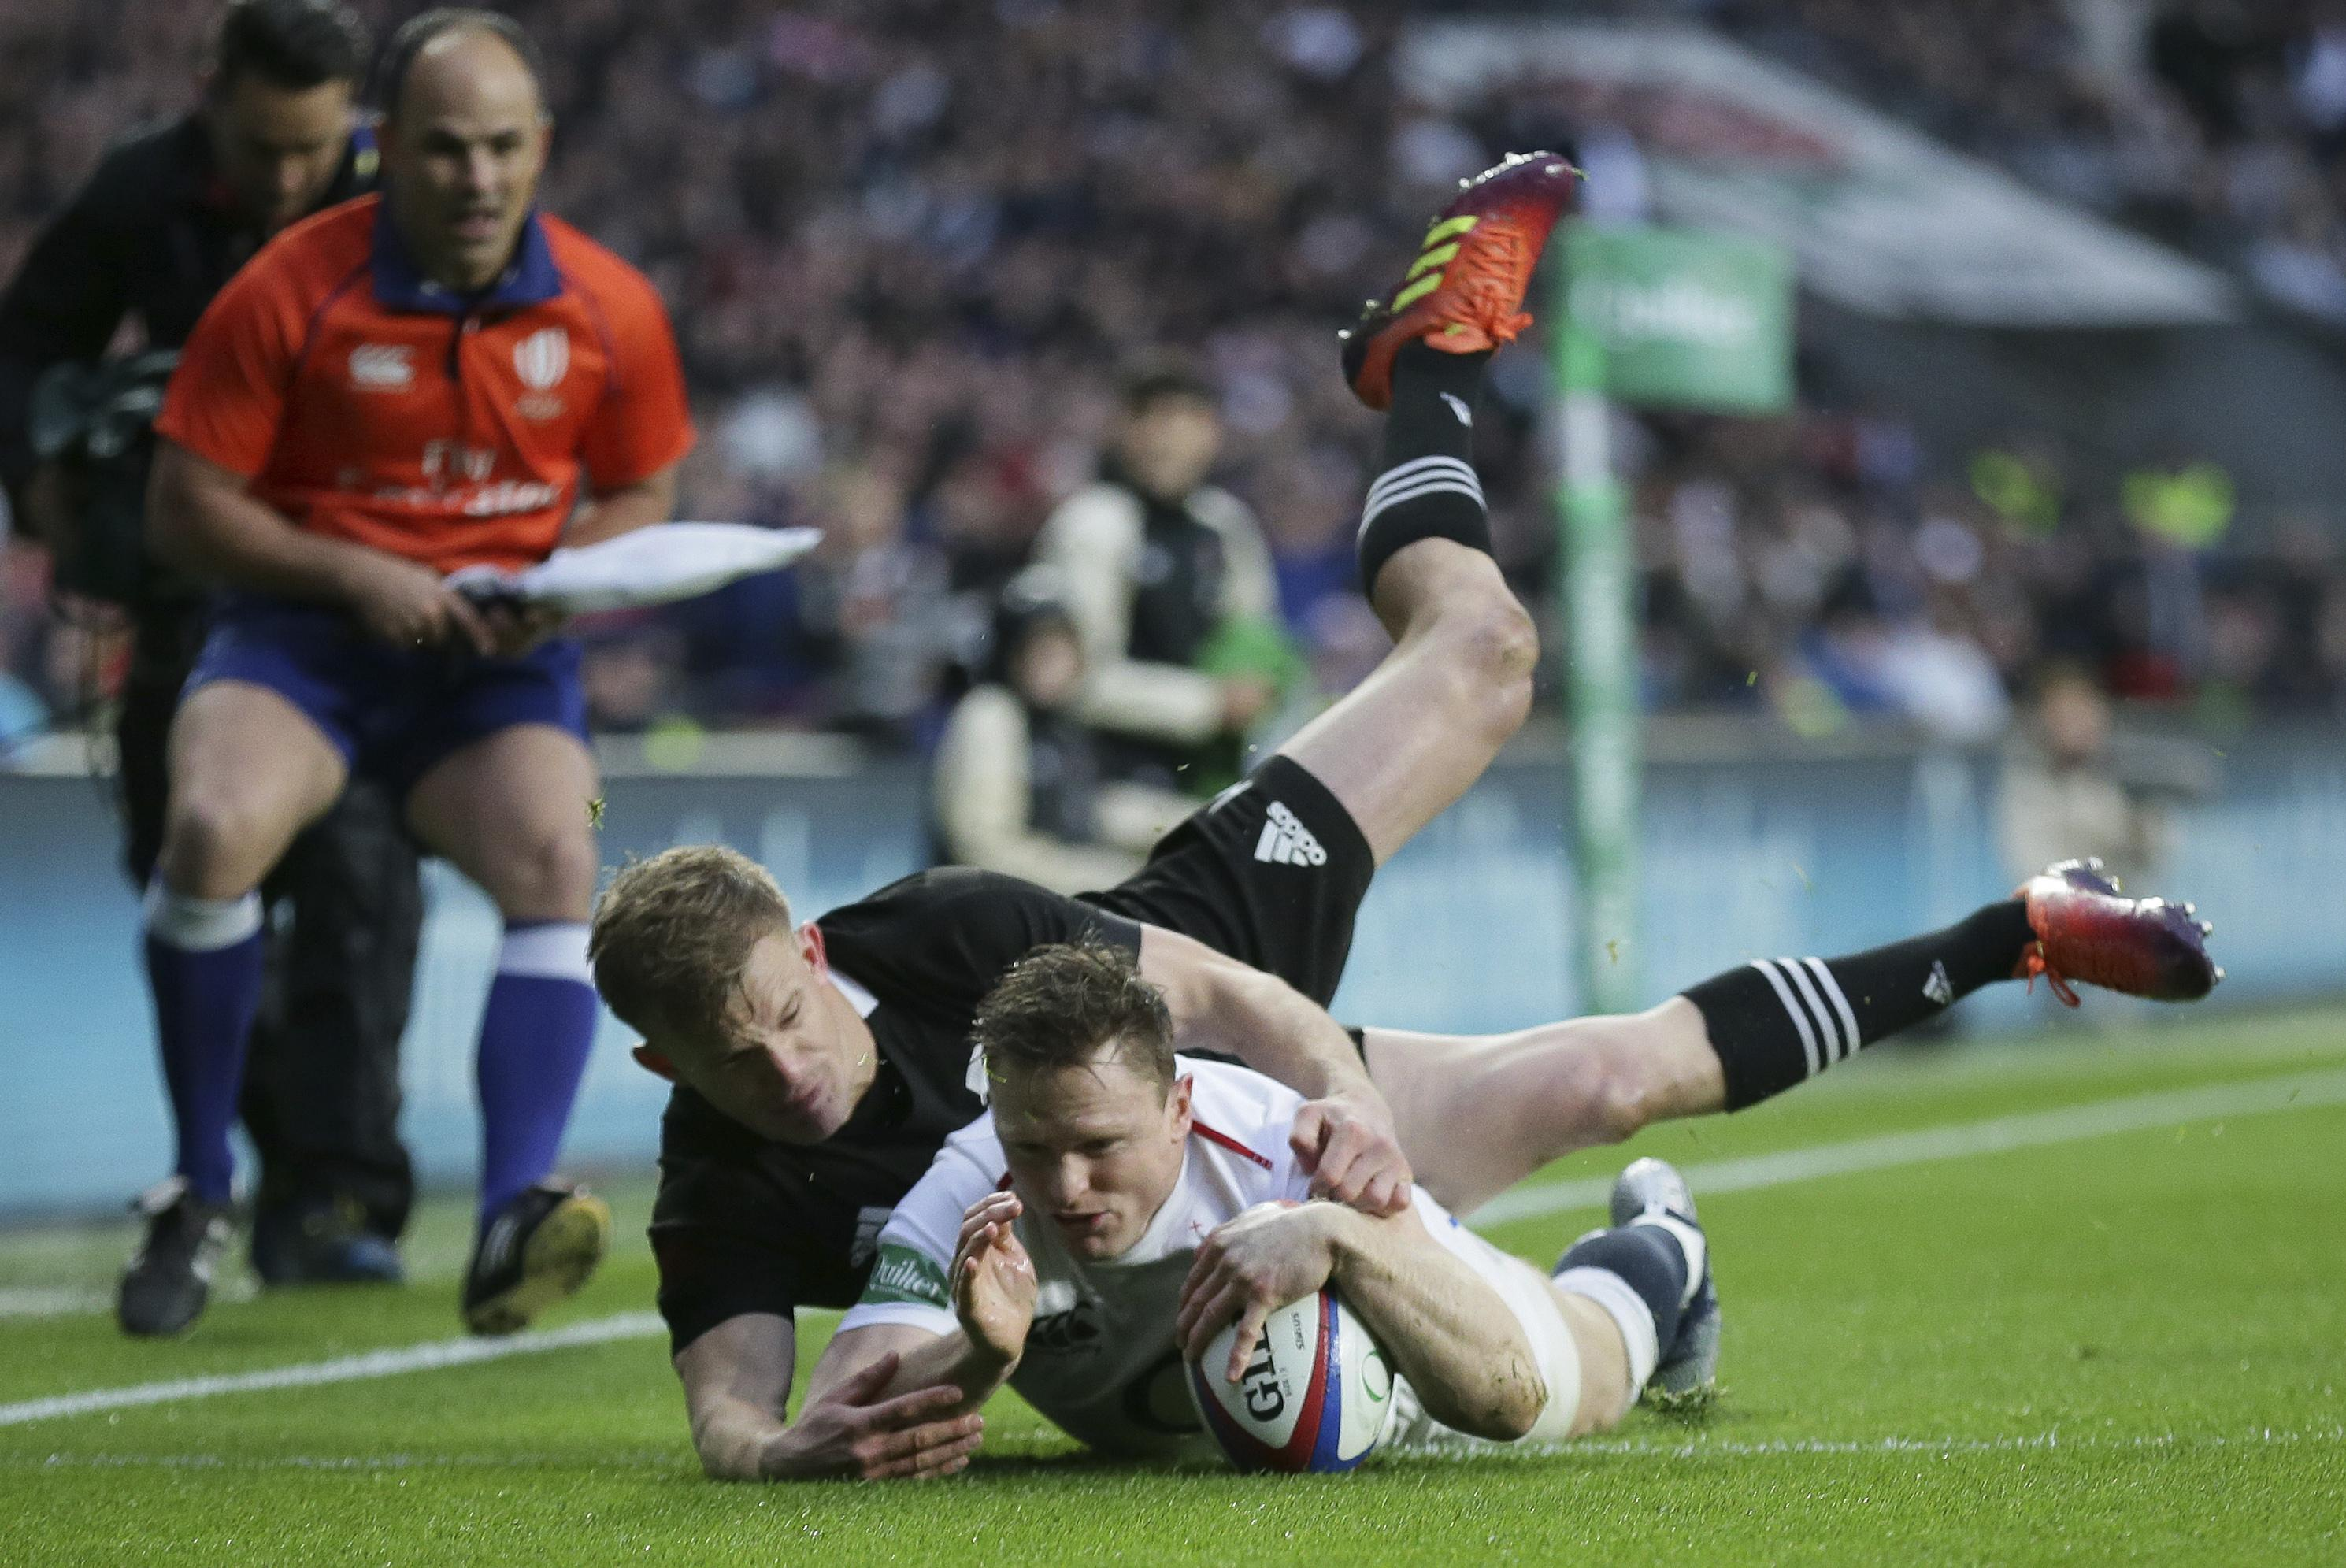 Chris Ashton scored a superb opener against the All Blacks - but now it looks like his autumn is over